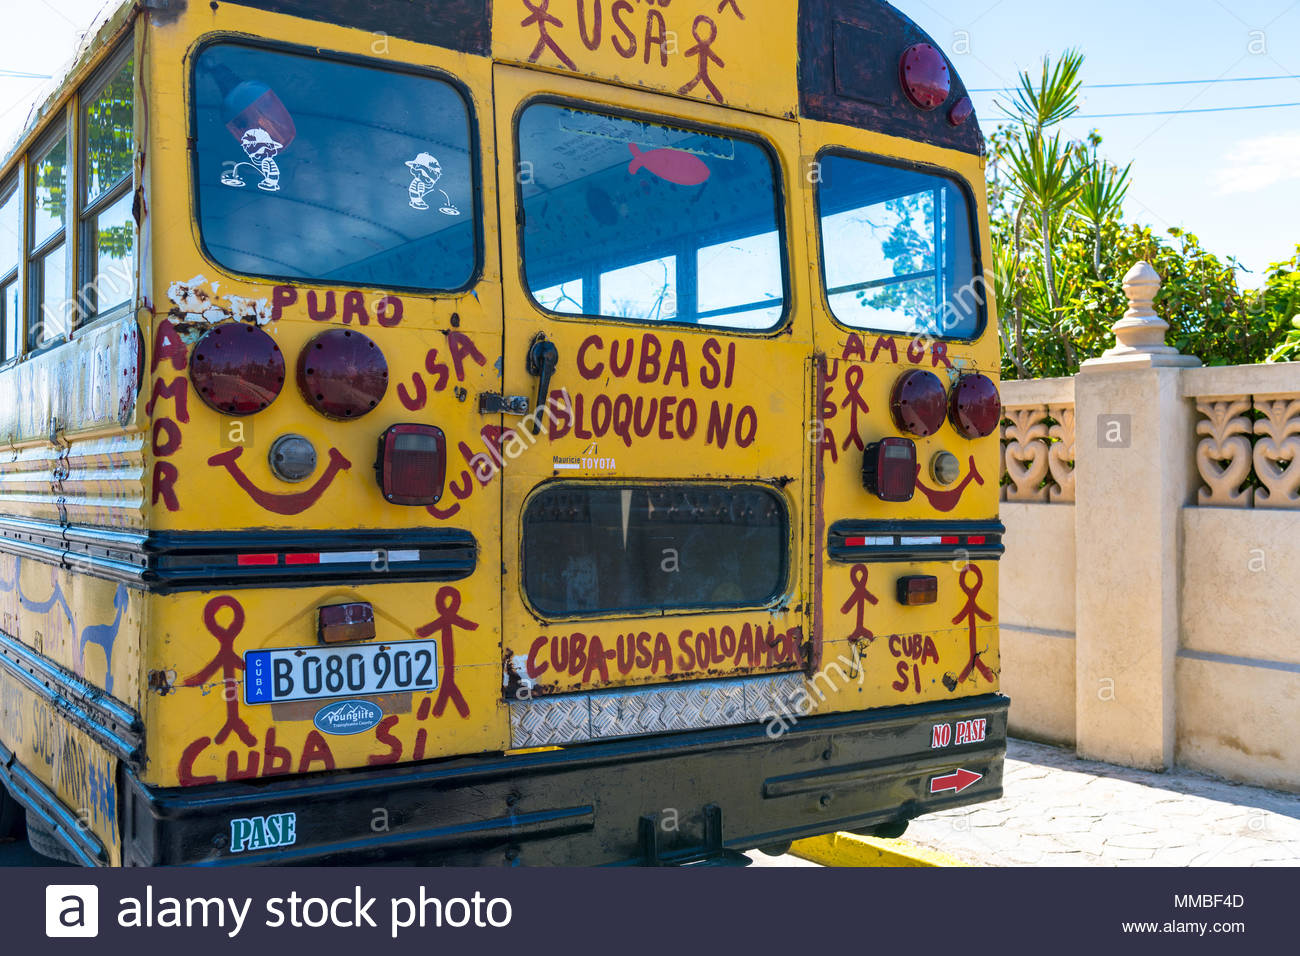 Pastors for Peace bus (rear part). The transportation vehicle is covered on letters promoting the Cuba-USA friendship. - Stock Image